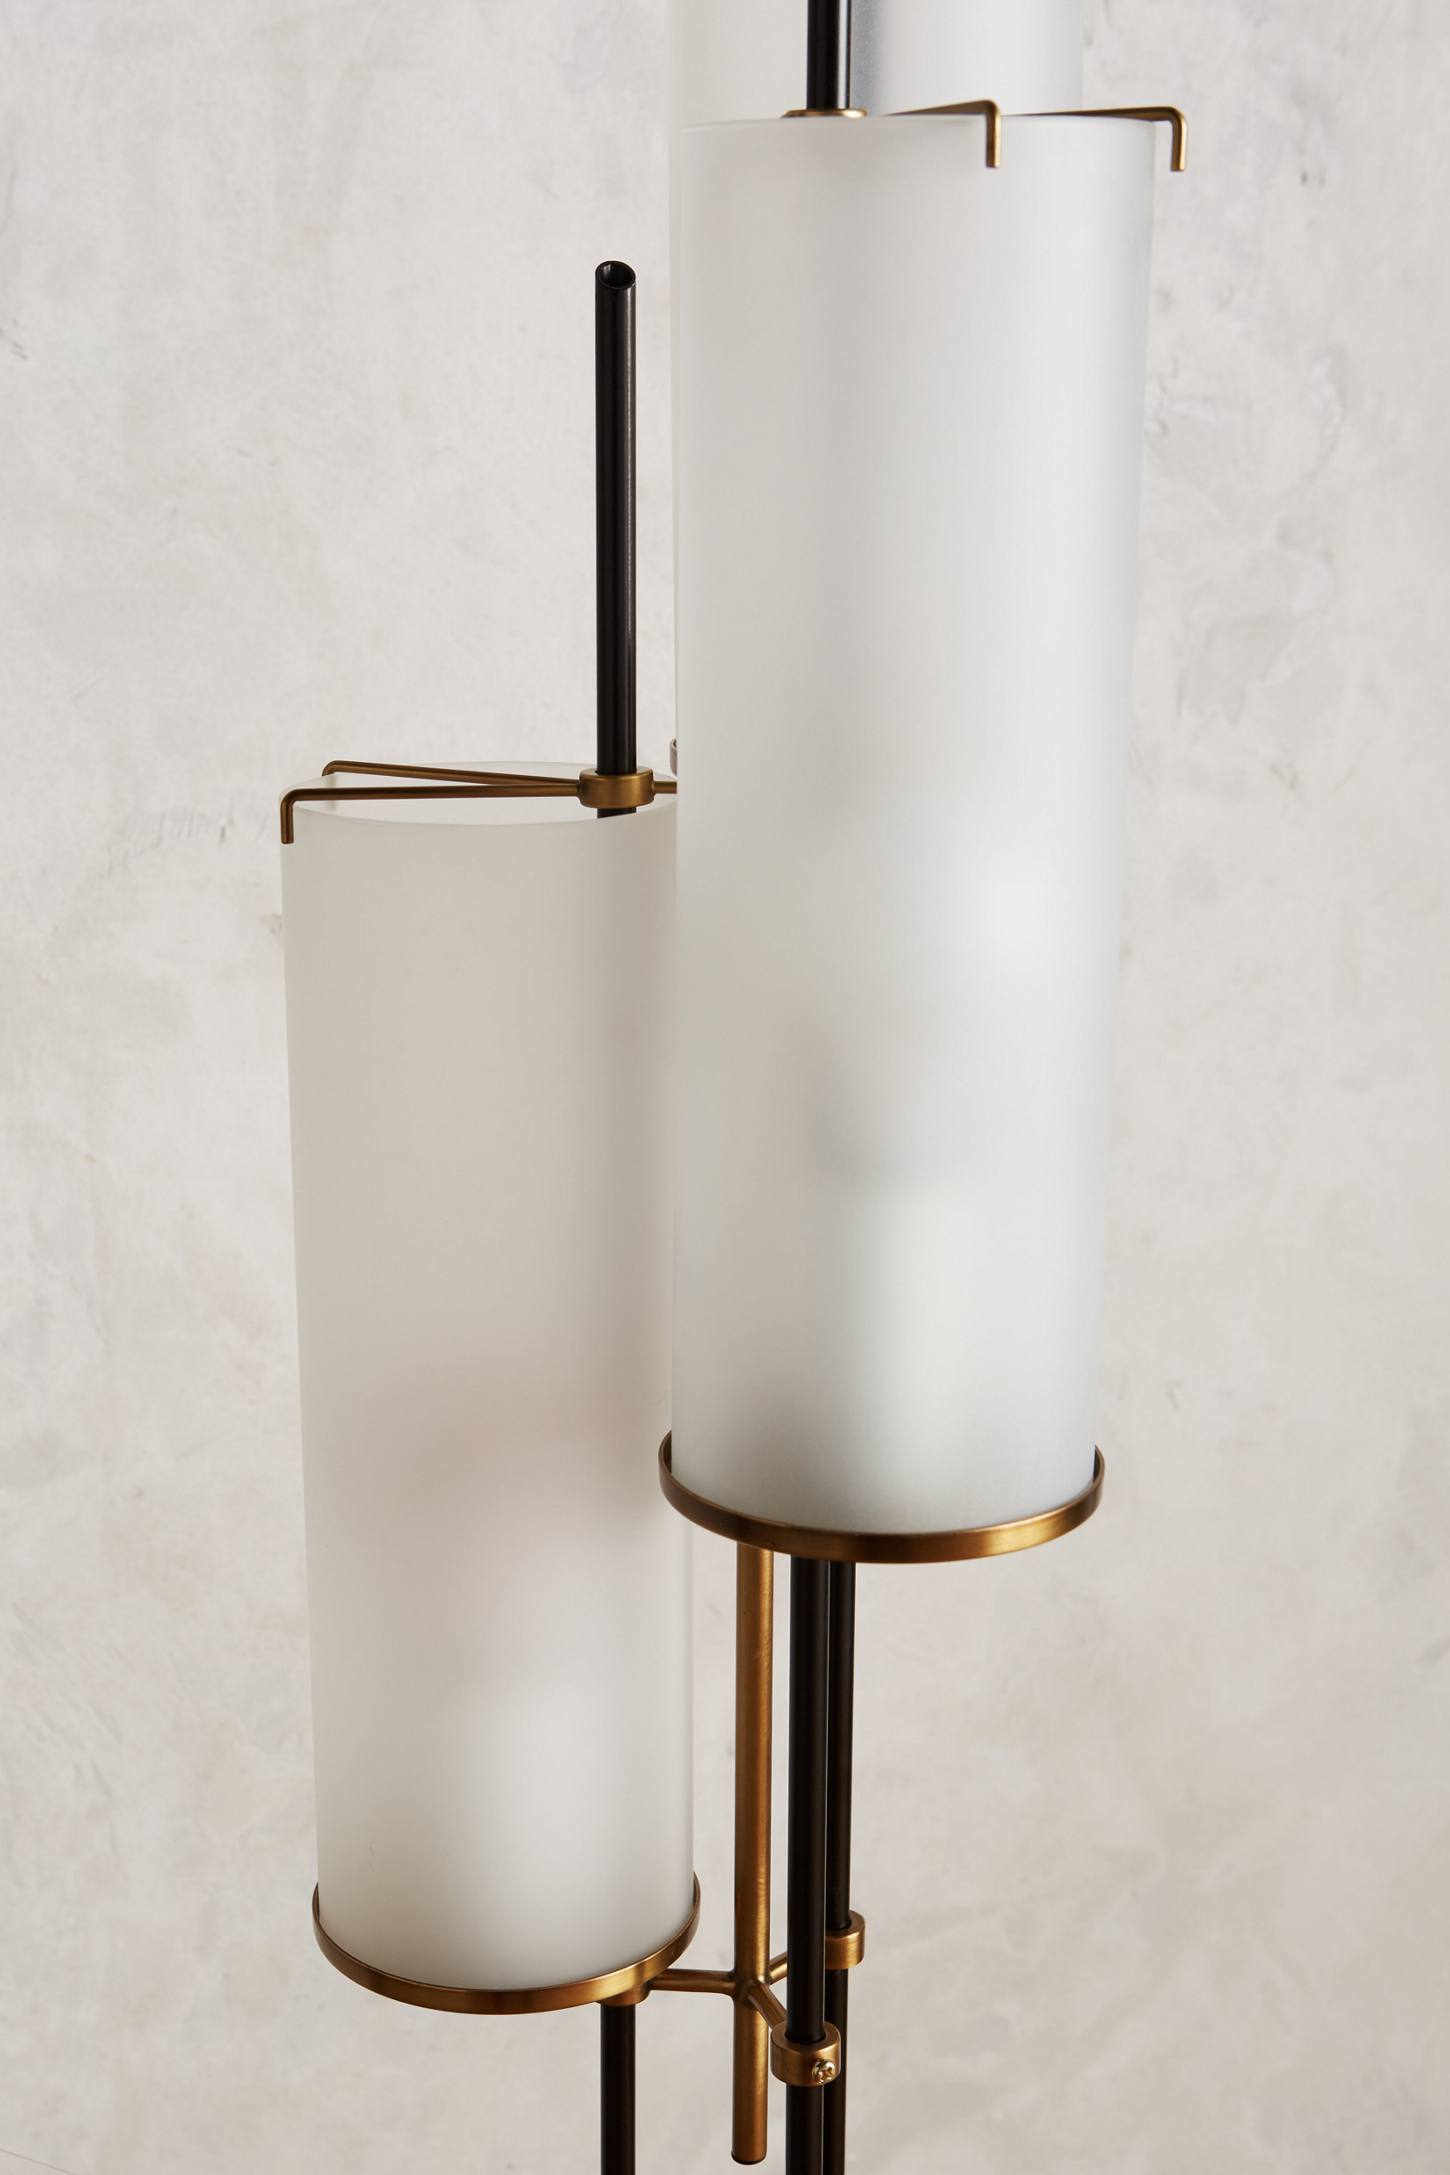 Slide View: 3: Clustered Torchiere Floor Lamp